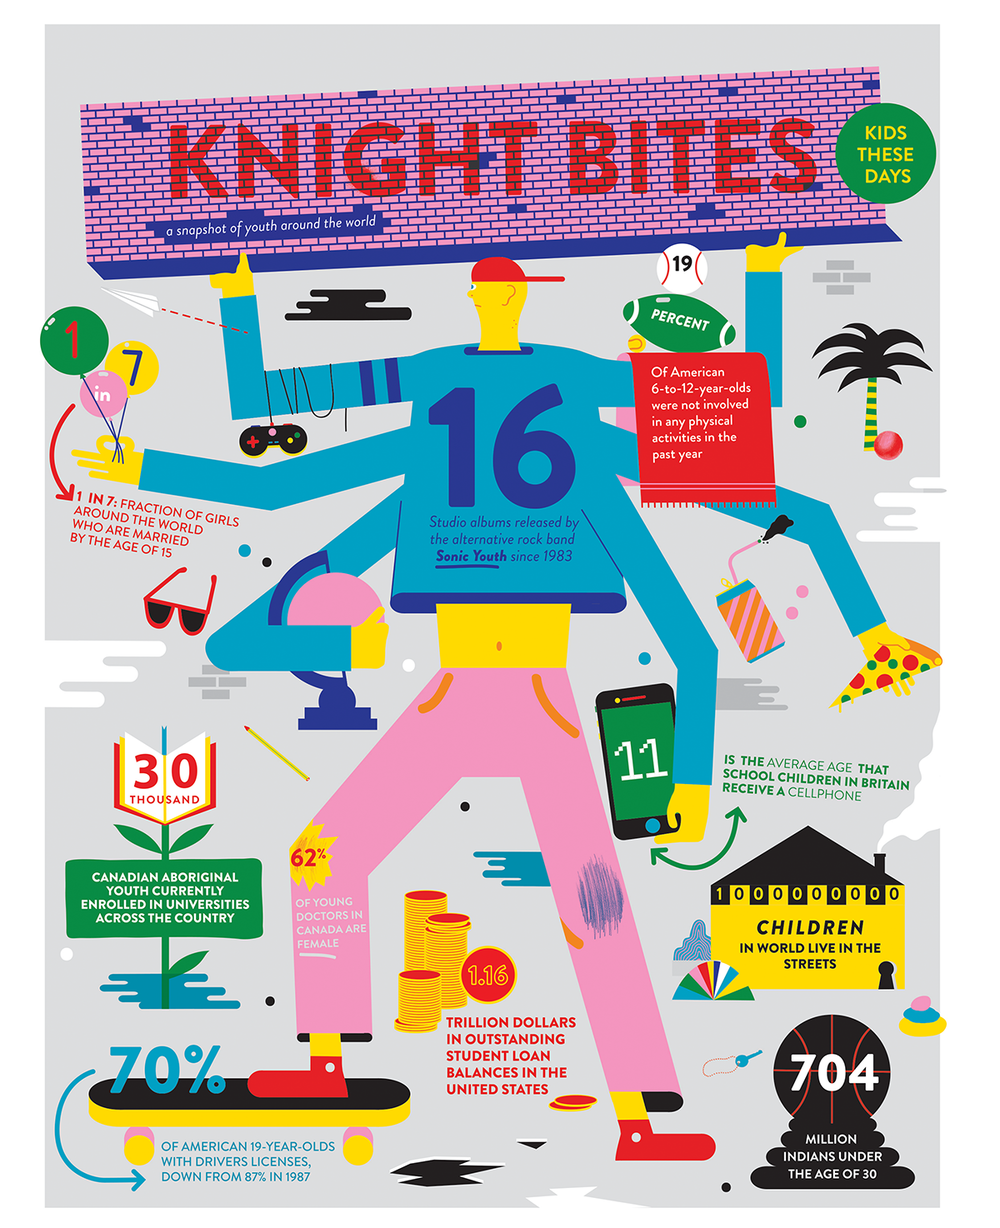 teenager, trends, stats, Corporate Knights Magazine, Knight bites, illustration, adrianforrow, skateboarding, basketball, pizza, palmtrees, smartphone, pop, soda, videogames, gamer, sports, education, canada, graphic,